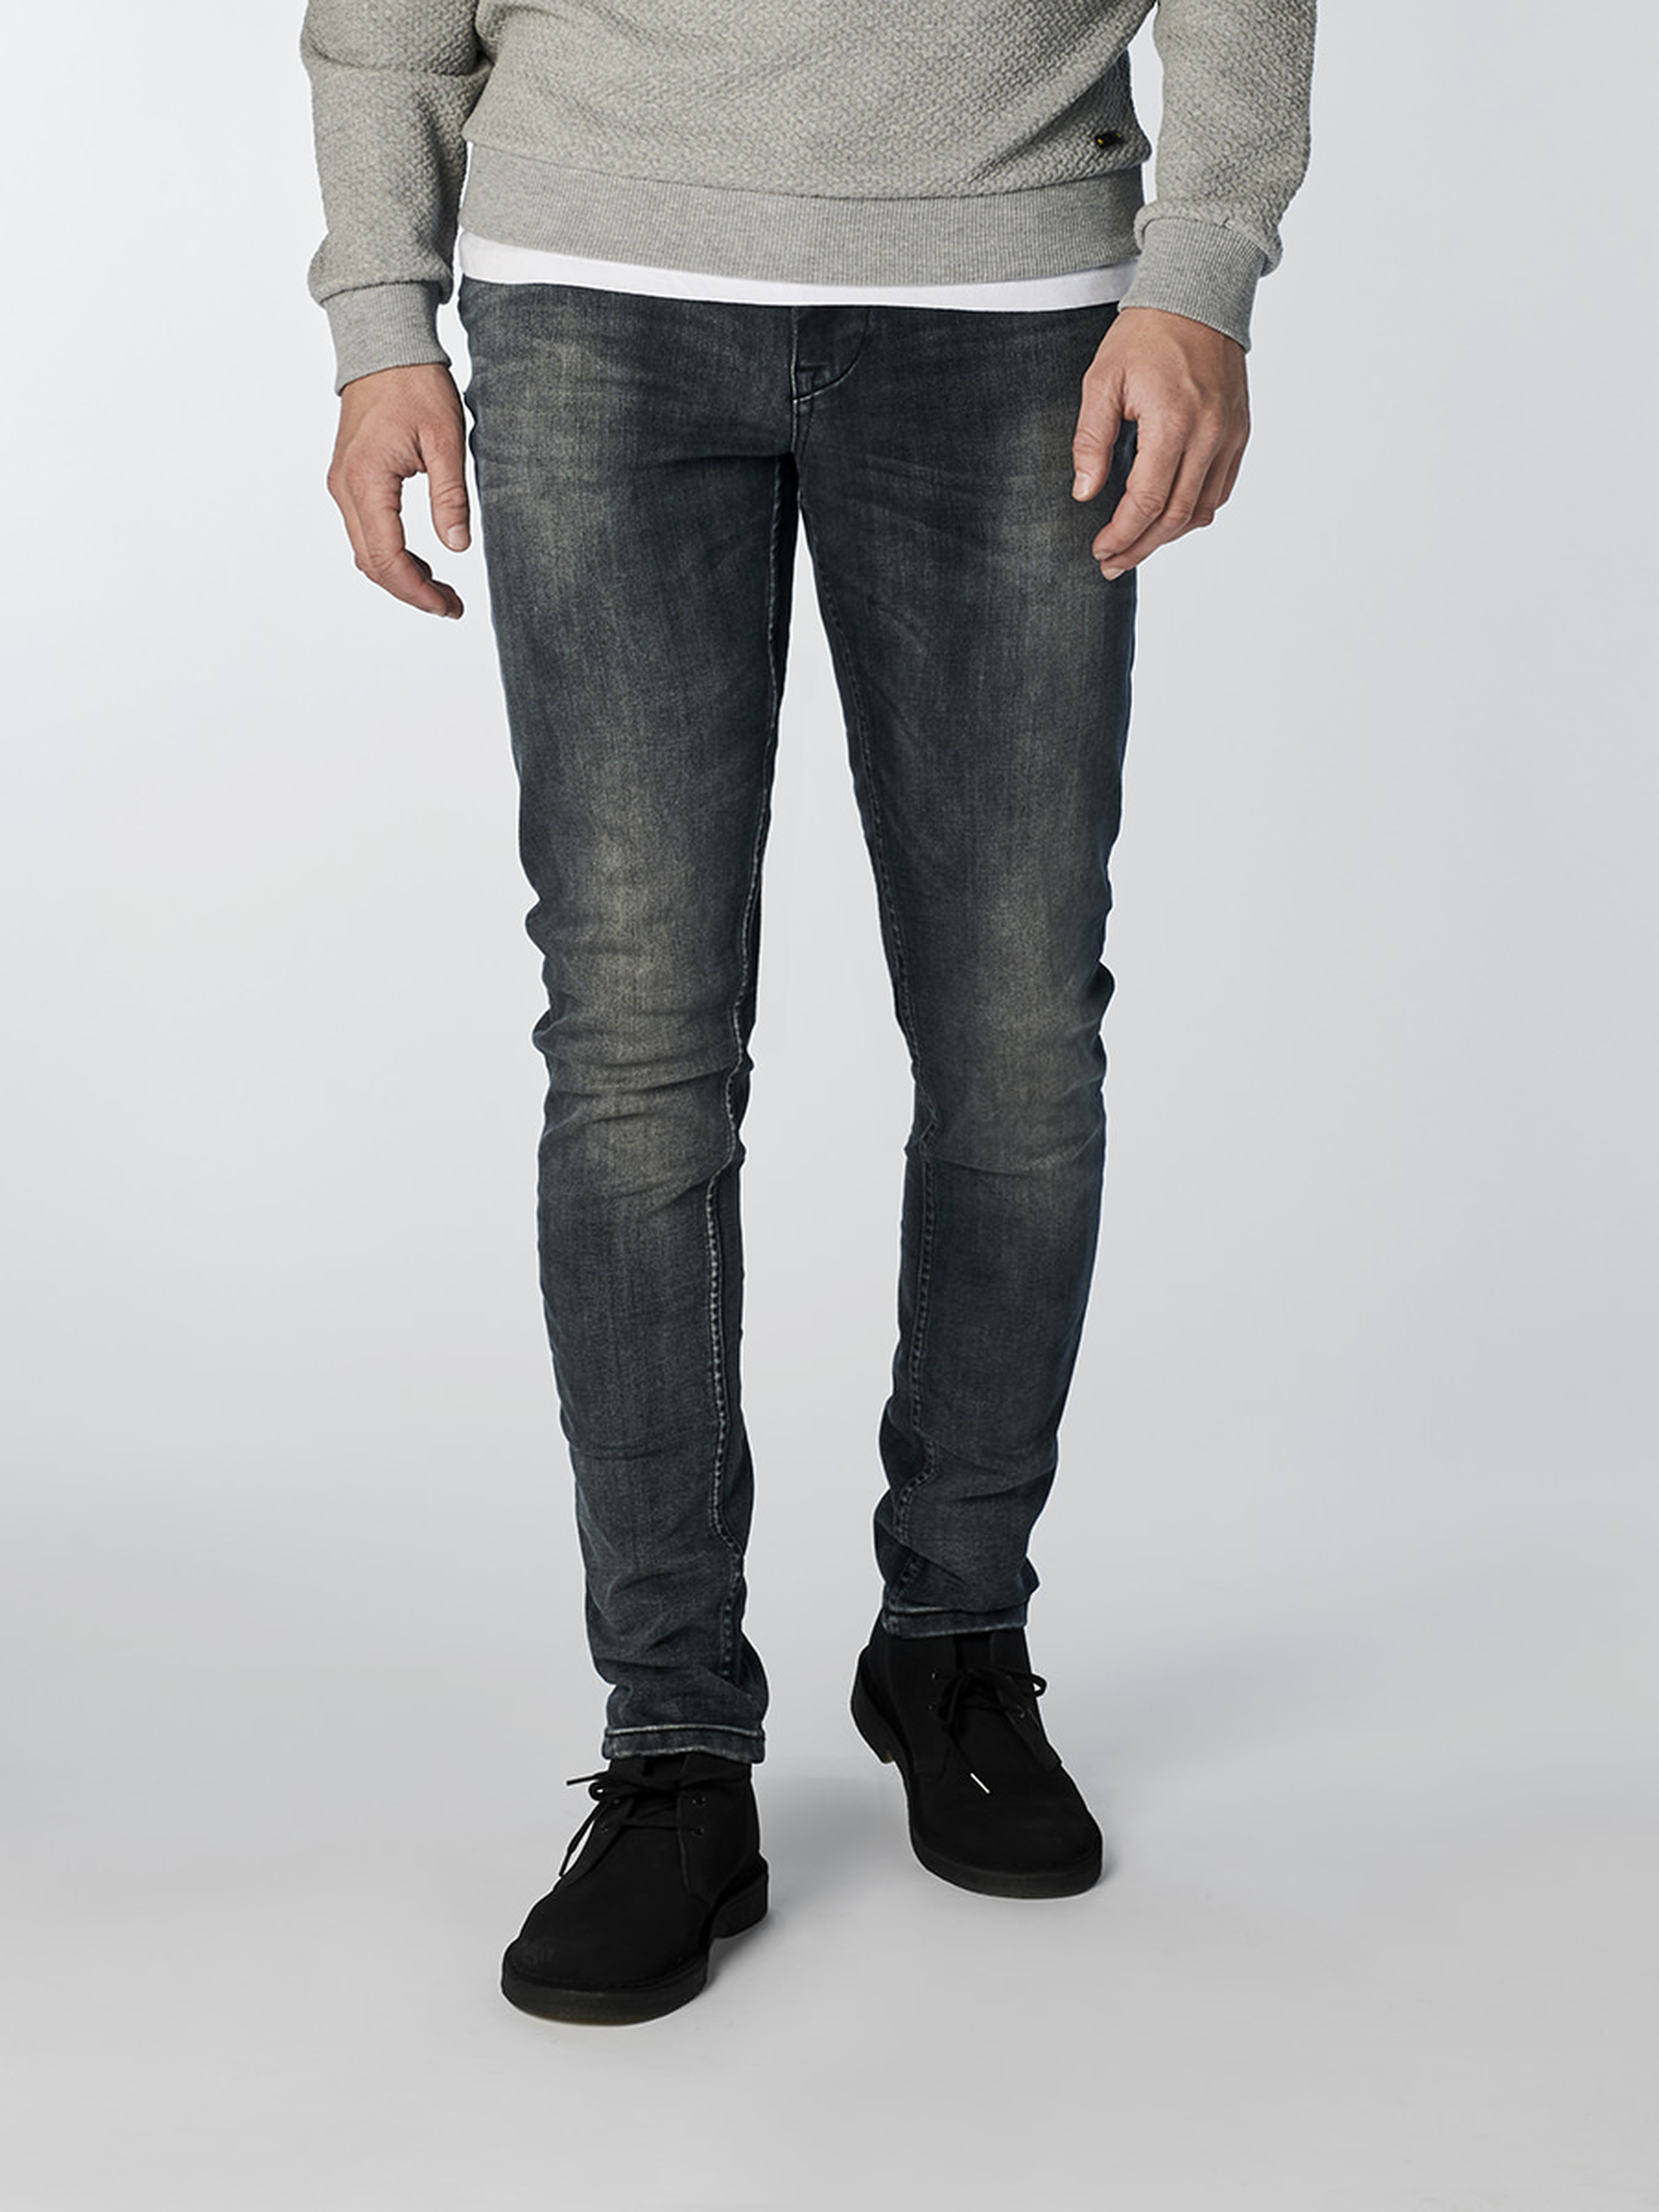 No-Excess Jeans 710 Grey Denim foto 4